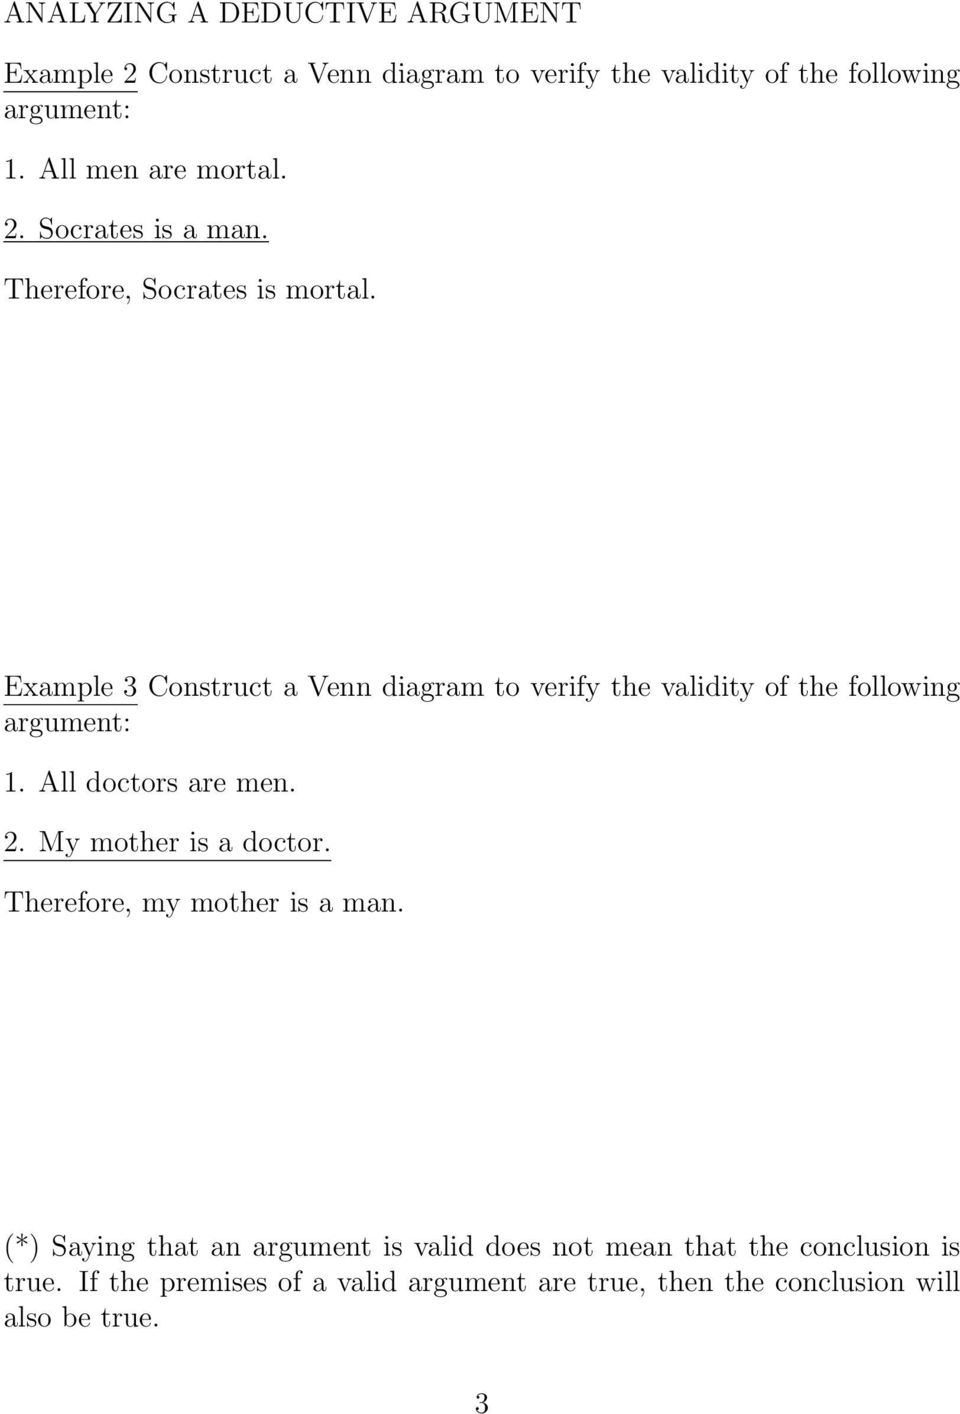 example 3 construct a venn diagram to verify the validity of the following  argument: 1